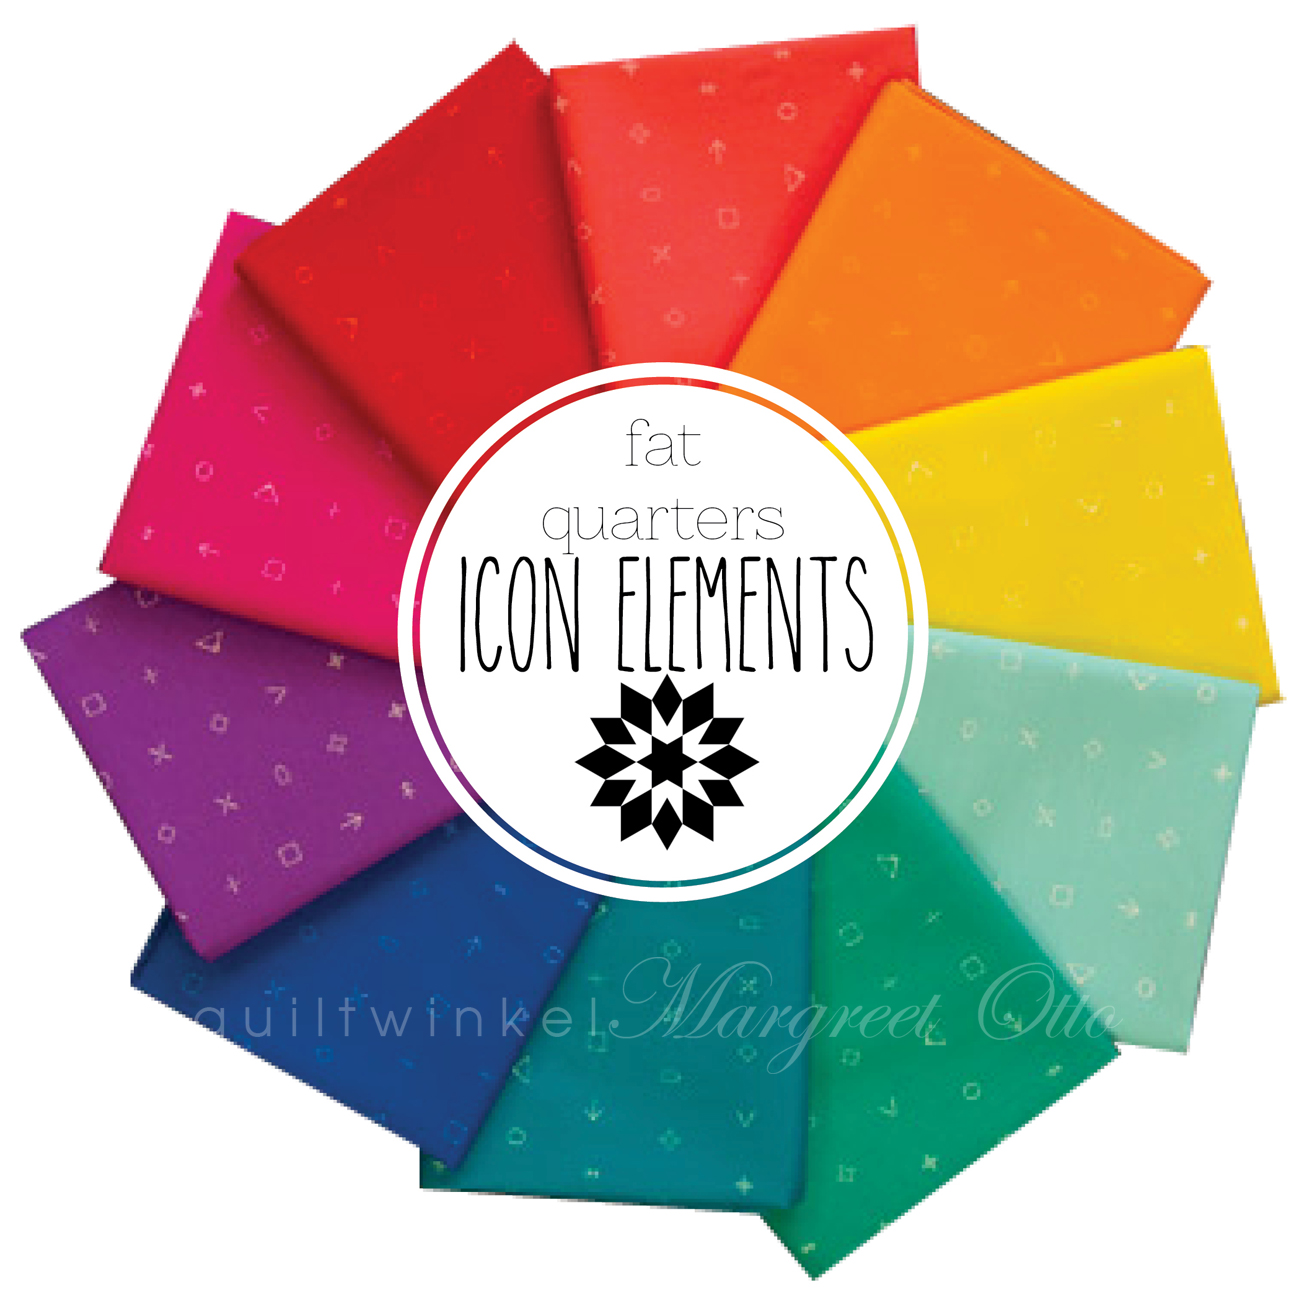 Fat Quarters Icon Elements